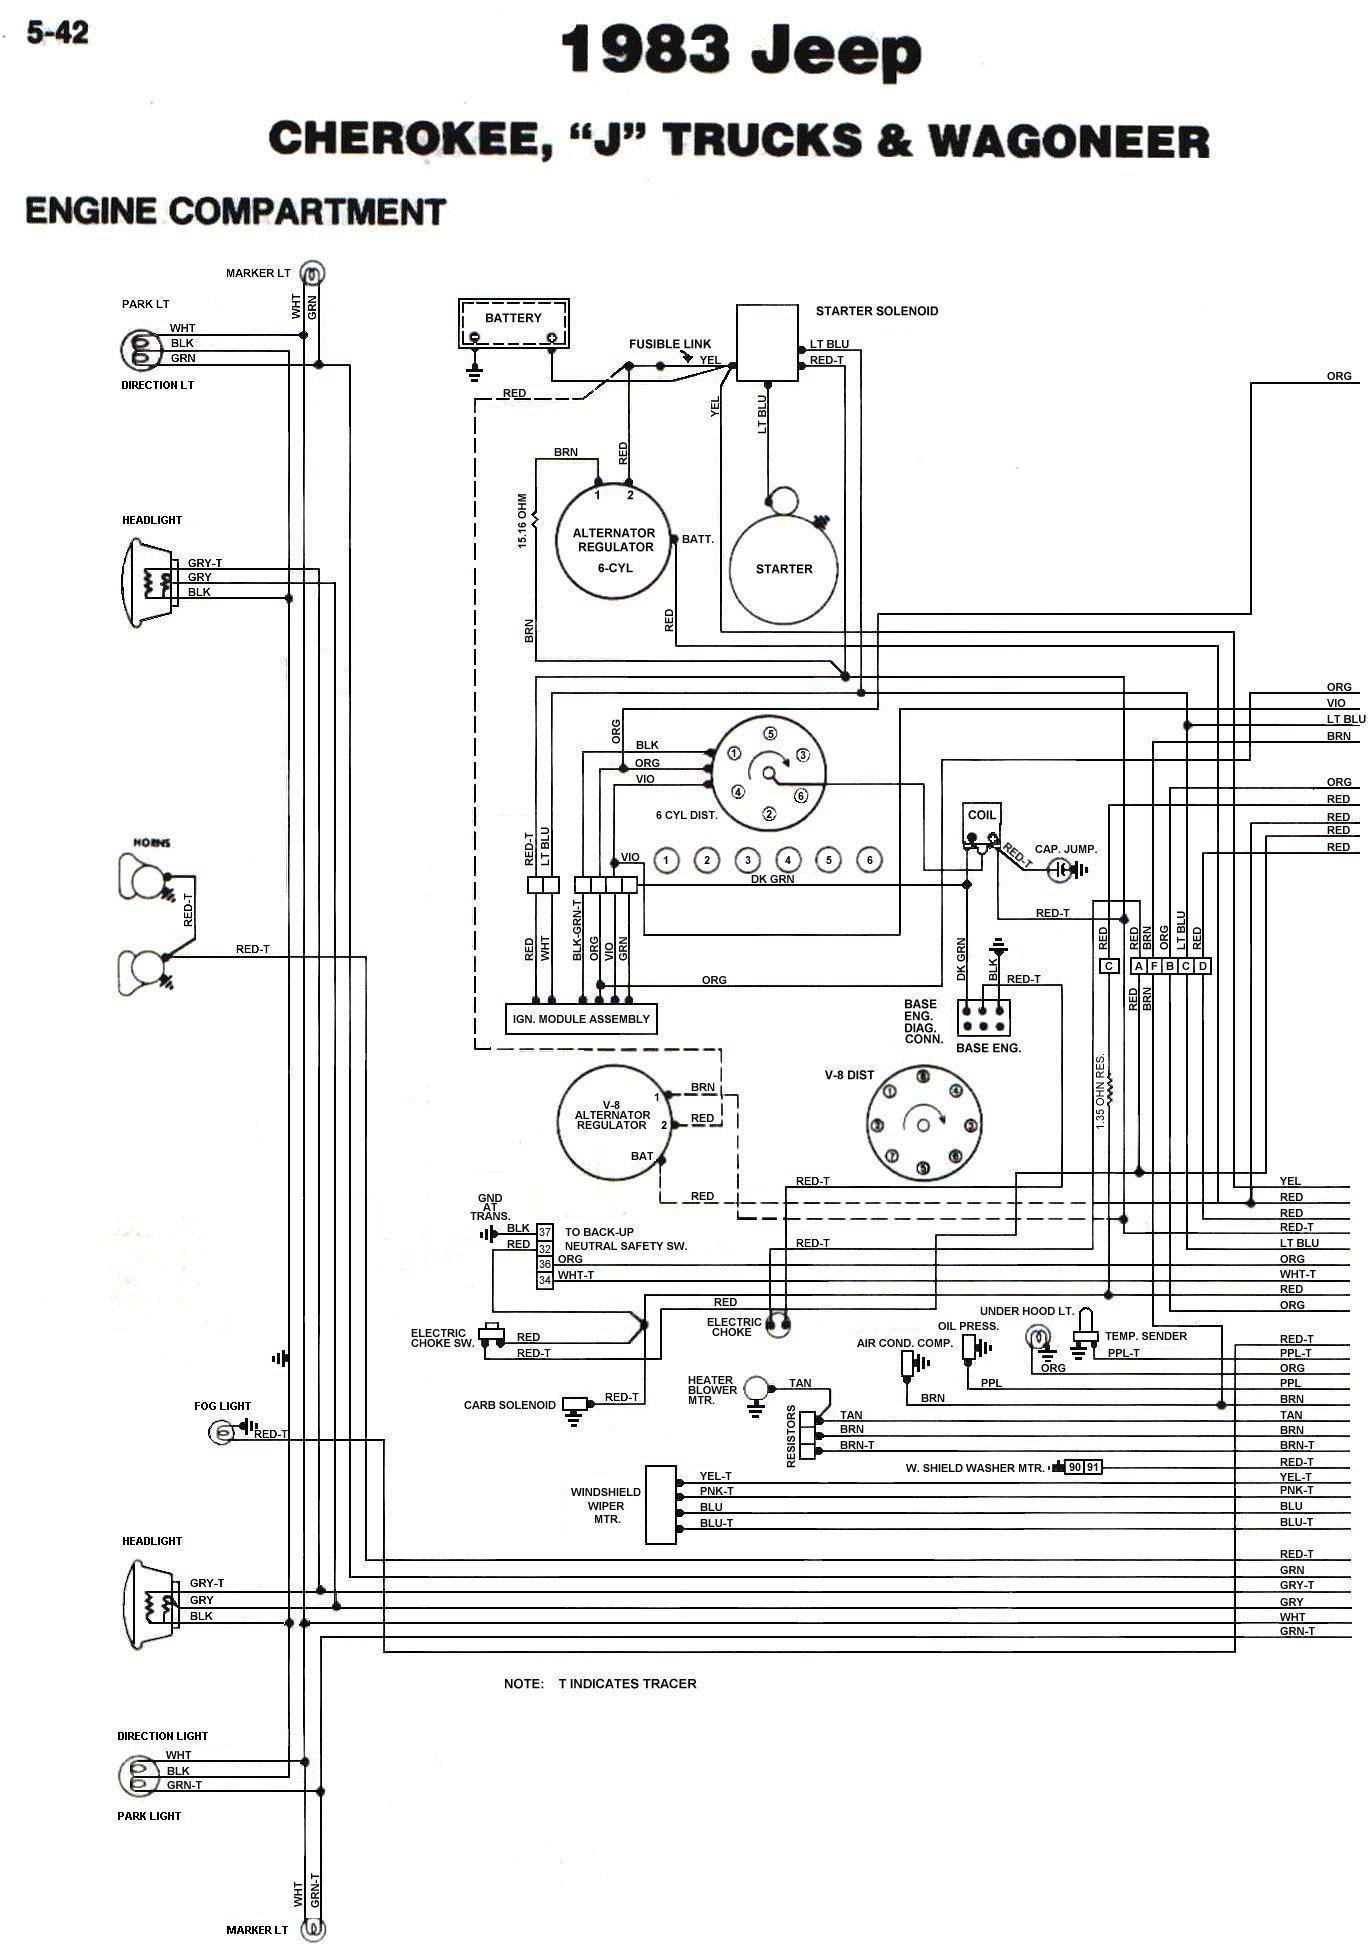 jeep j10 wiring wiring diagram1983 jeep j10 wiring diagram diagram data  schema exp1983 jeep j10 wiring